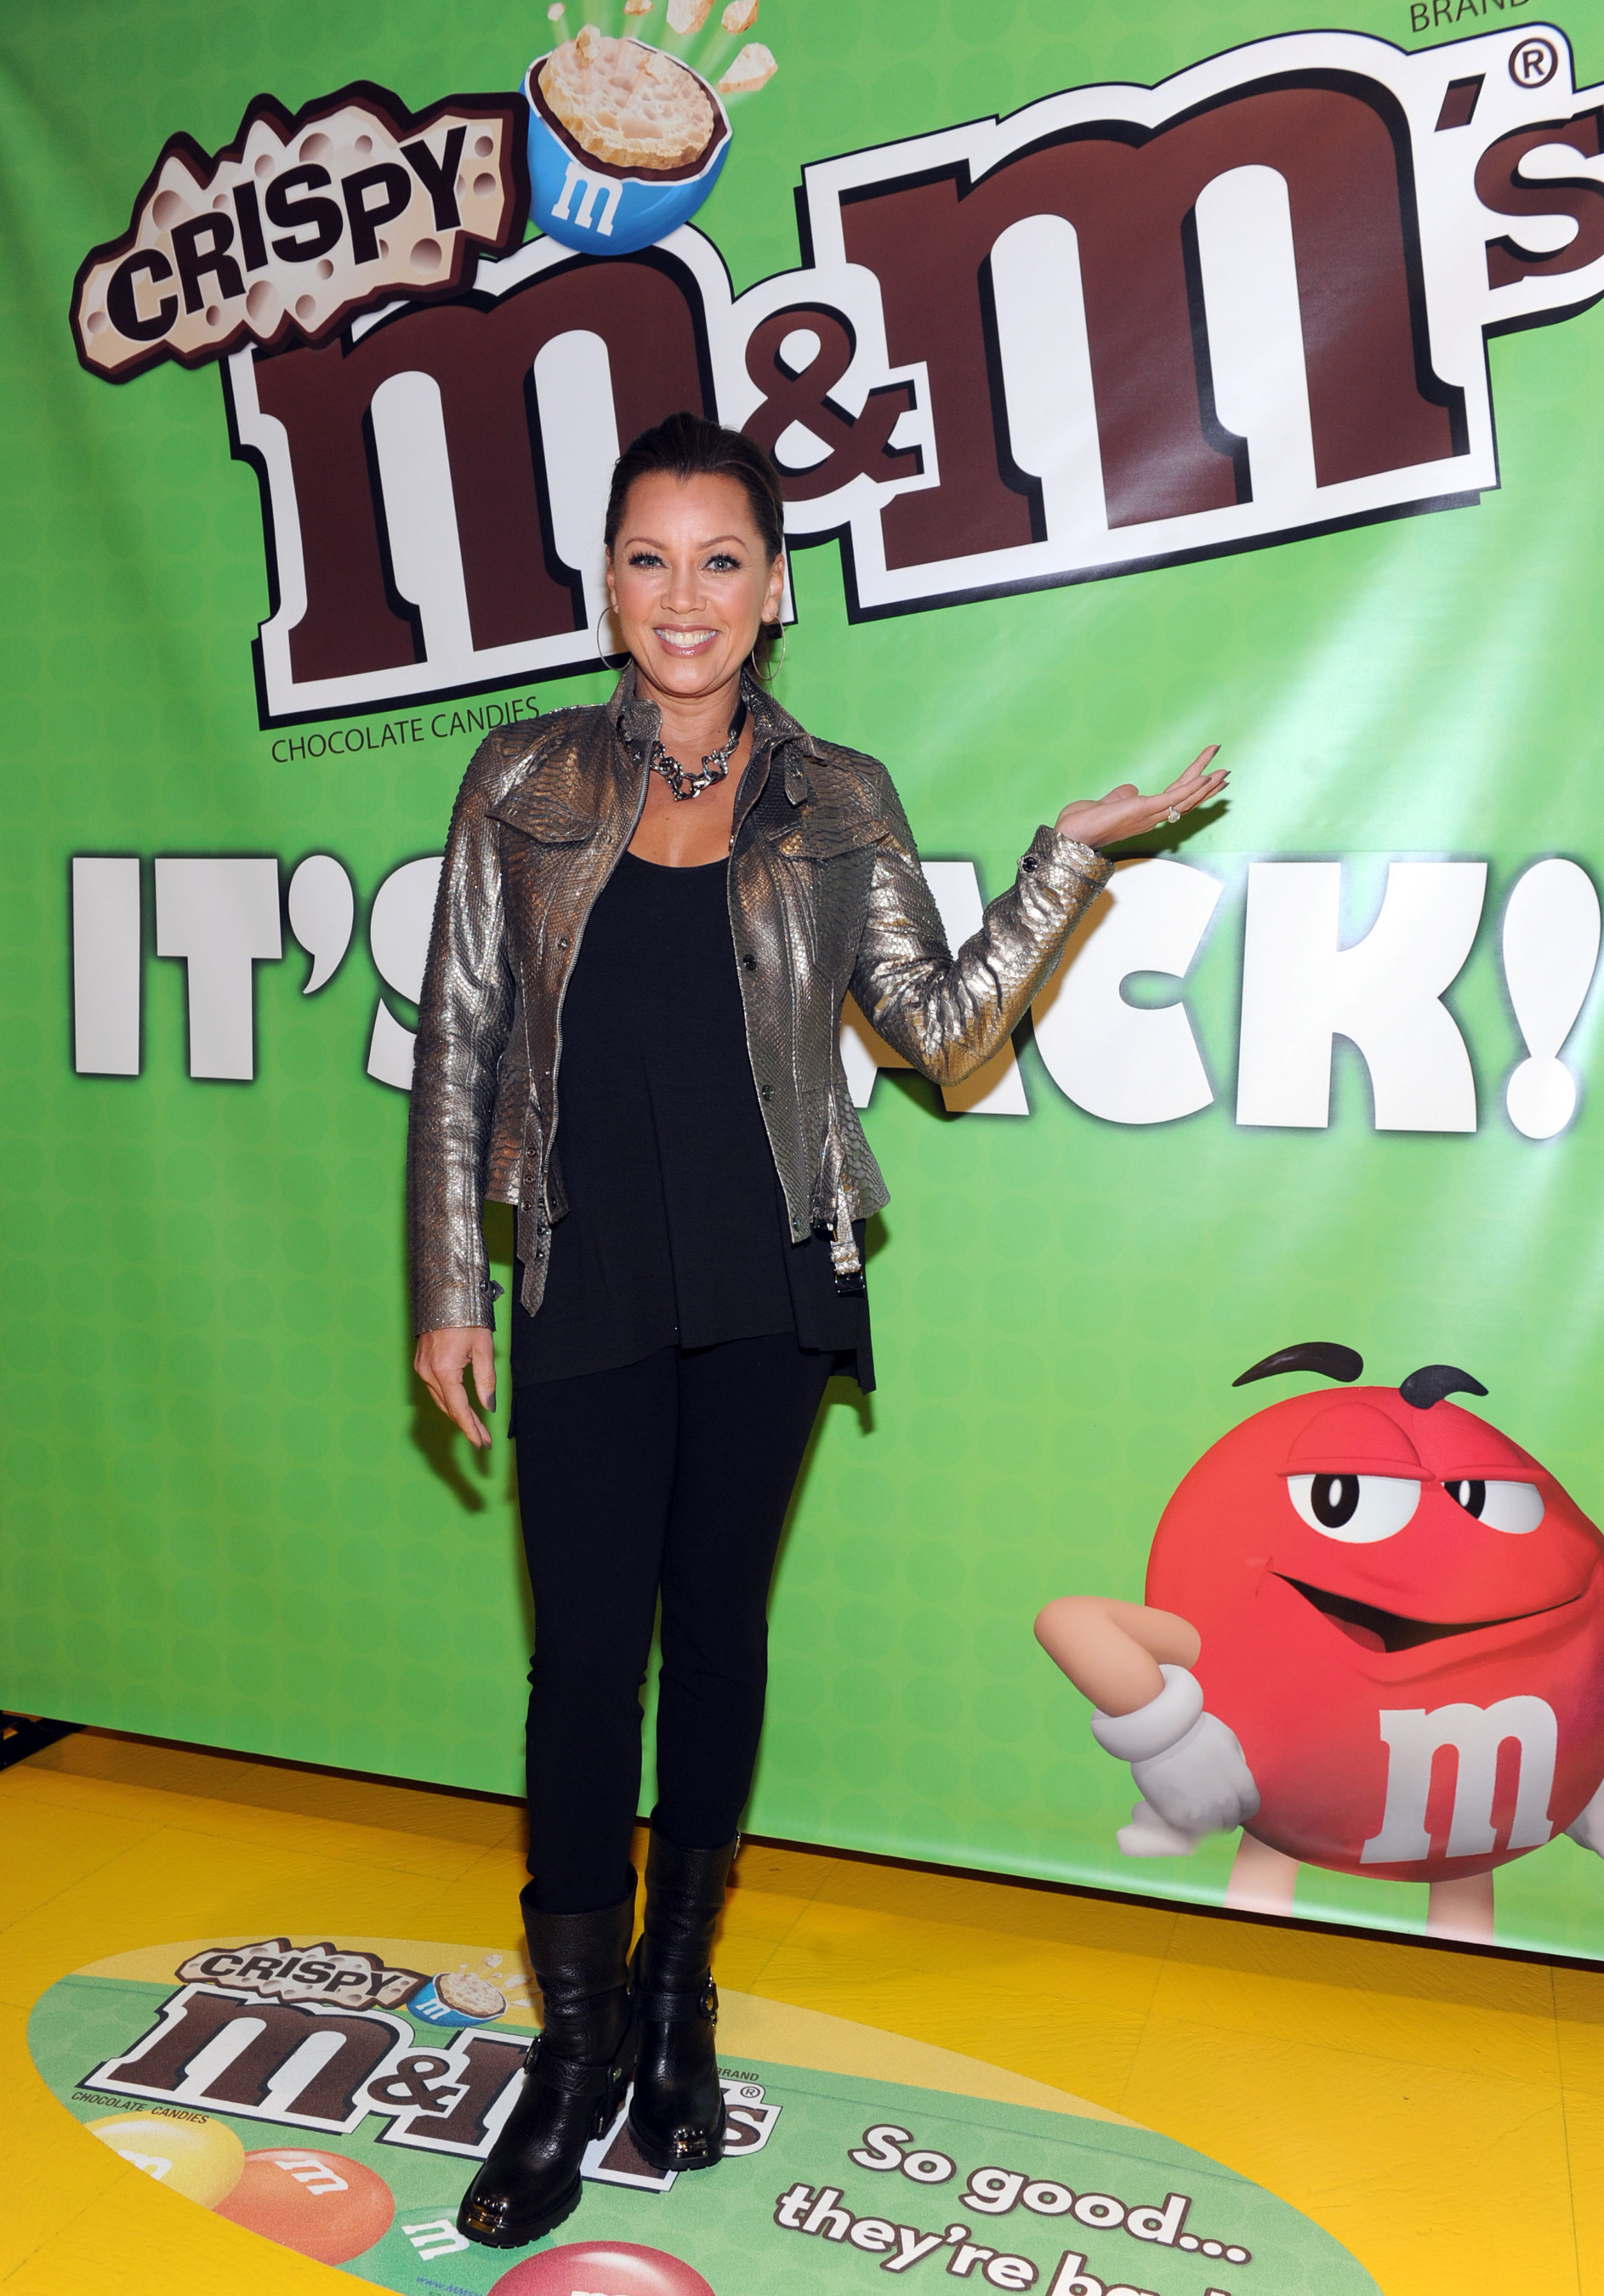 (December 9, 2014) Vanessa Williams, the multi-talented entertainer and voice behind M&M'S(R) Brand spokescandy Ms. Brown, welcomes the first batch of M&M'S(R) Crispy to M&M'S World(R) in Times Square. The product will begin returning to store shelves nationwide this week after a 10-year hiatus, thanks to a vocal fan base who pleaded for its return. (Photo by Diane Bondareff for Mars Chocolate North America)